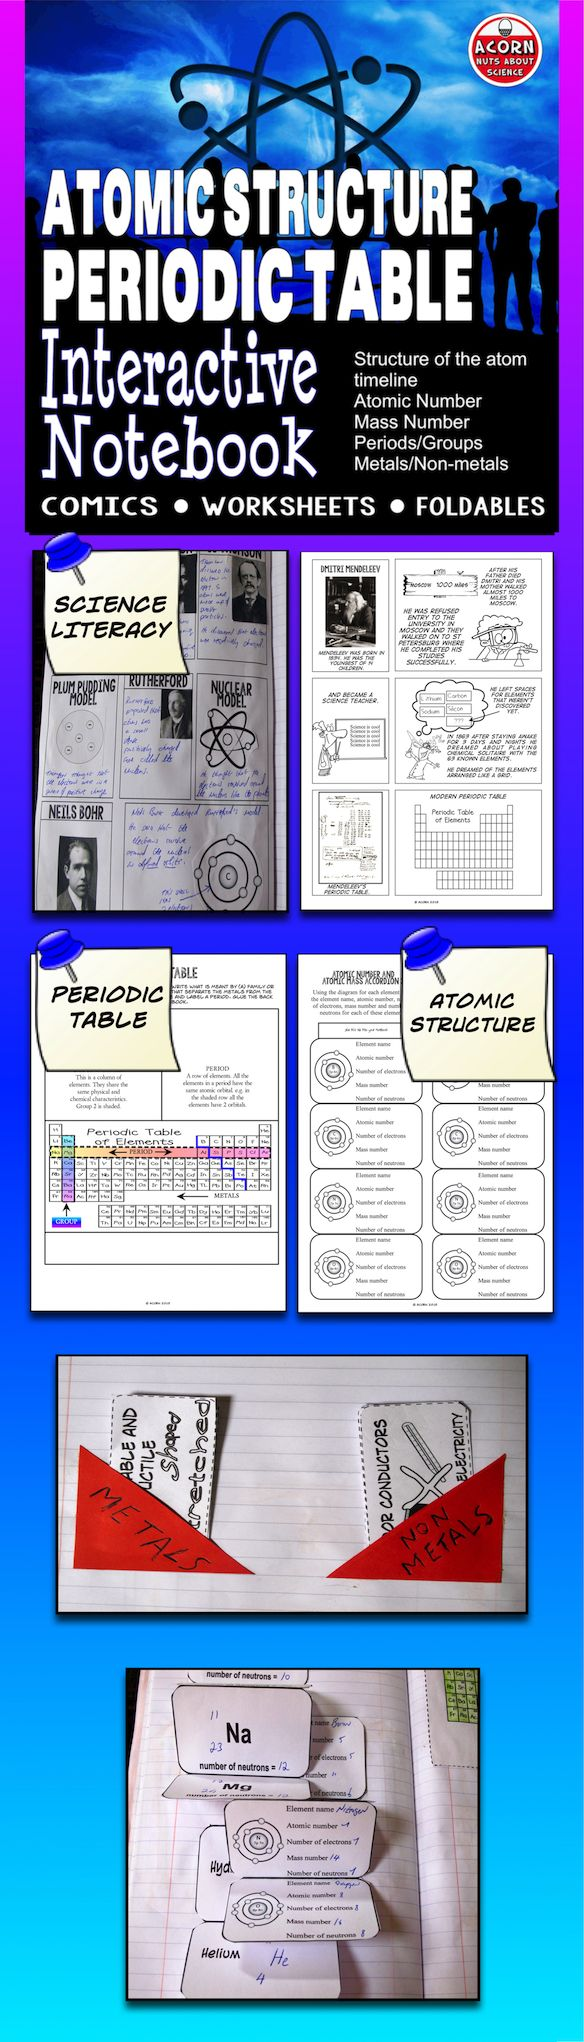 Atom structure periodic table interactive notebook mass number atom structure periodic table interactive notebook gamestrikefo Image collections